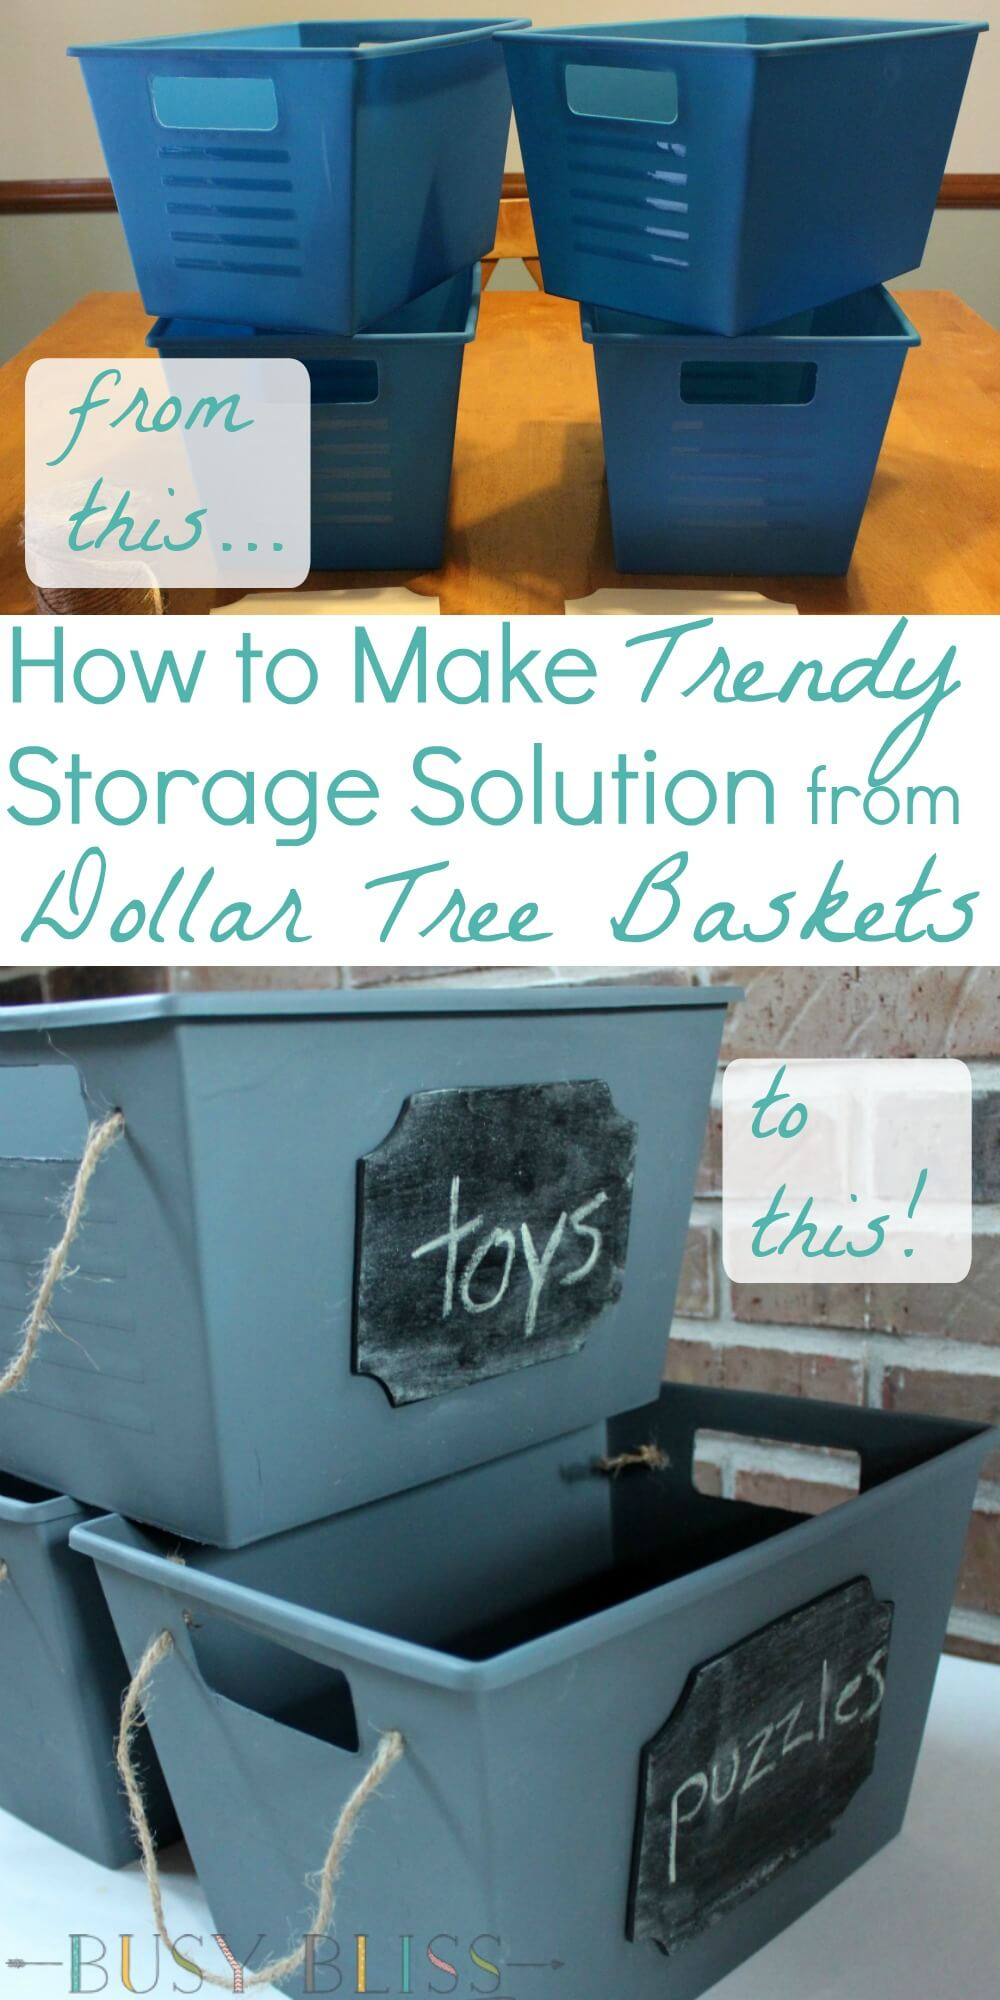 This makeover turns Dollar Tree baskets into trendy storage. Get organized with this easy DIY project.